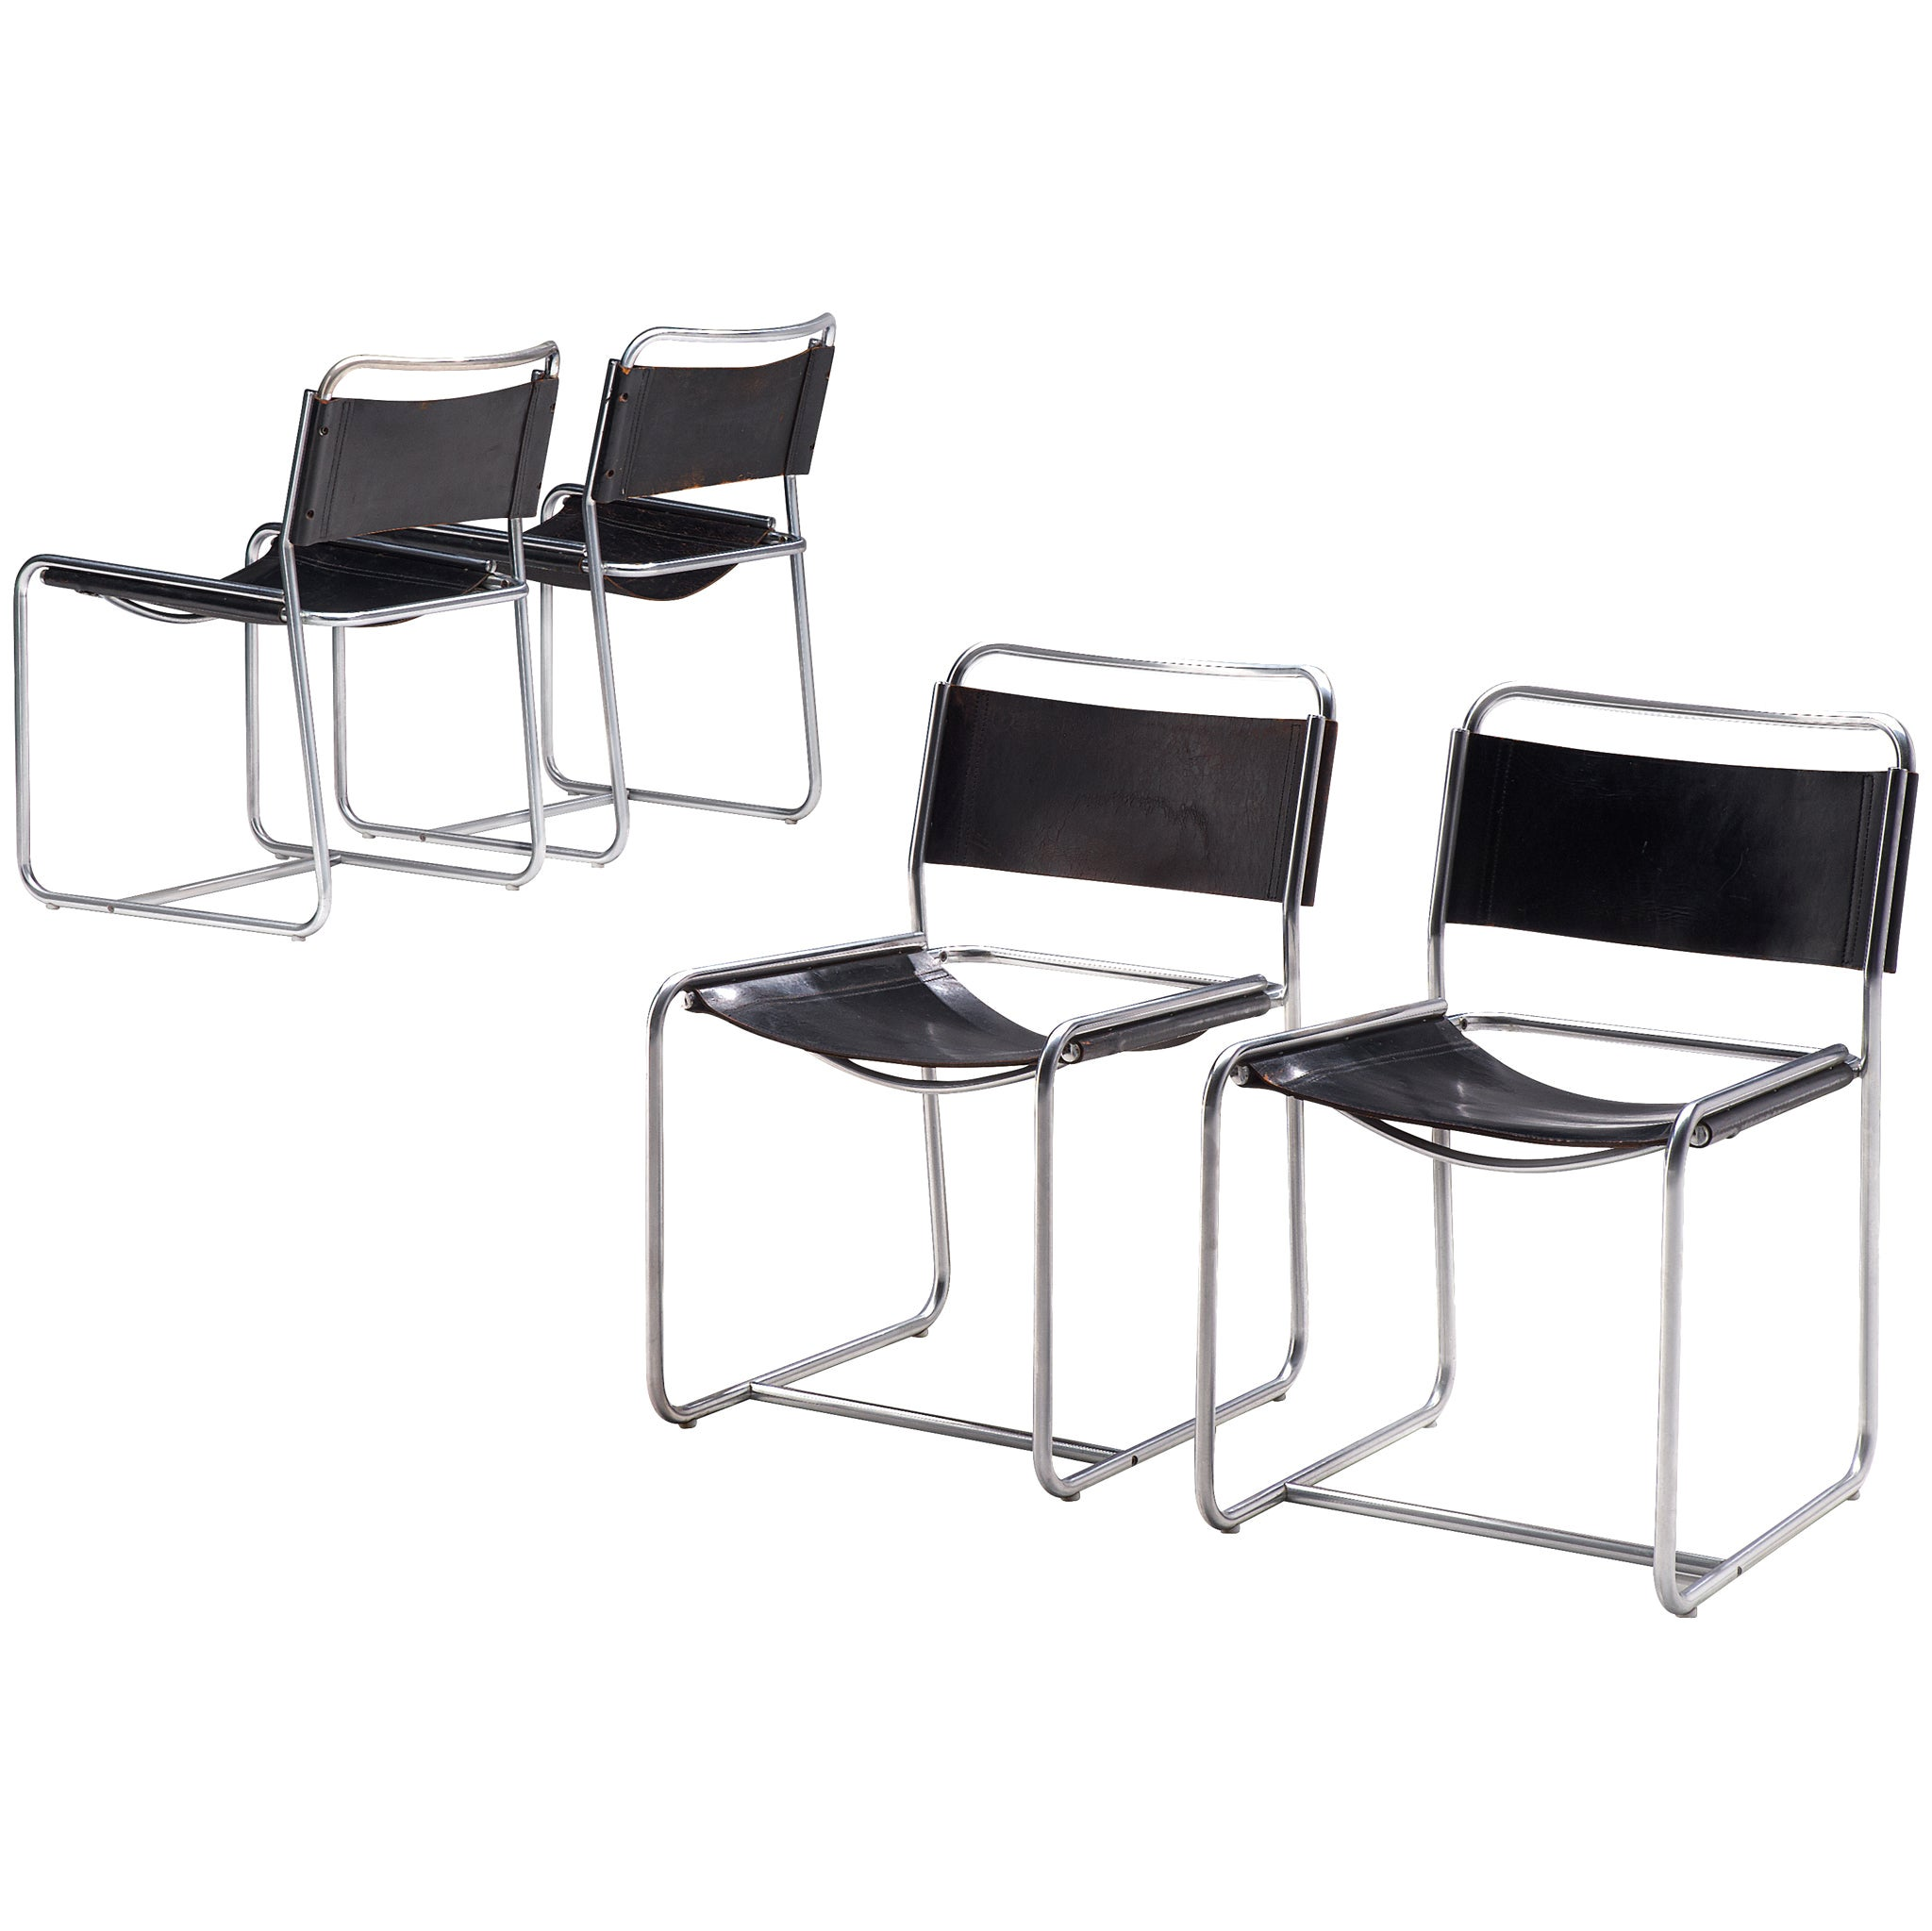 Set of Four Tubular Chairs by 't Spectrum